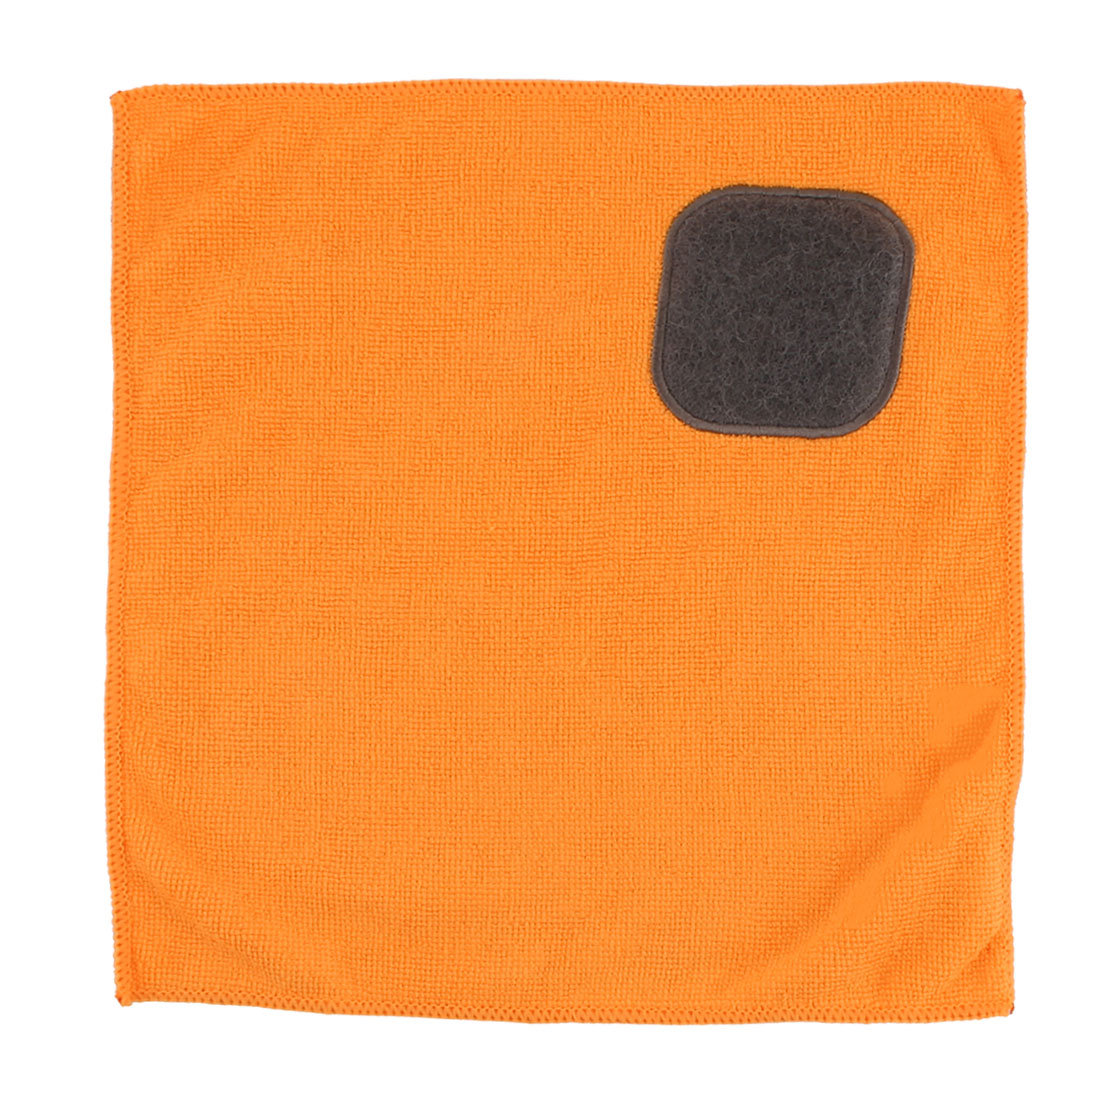 Household Kitchenware Microfiber Bowl Pot Dish Washcloth Cleaning Towel Orange